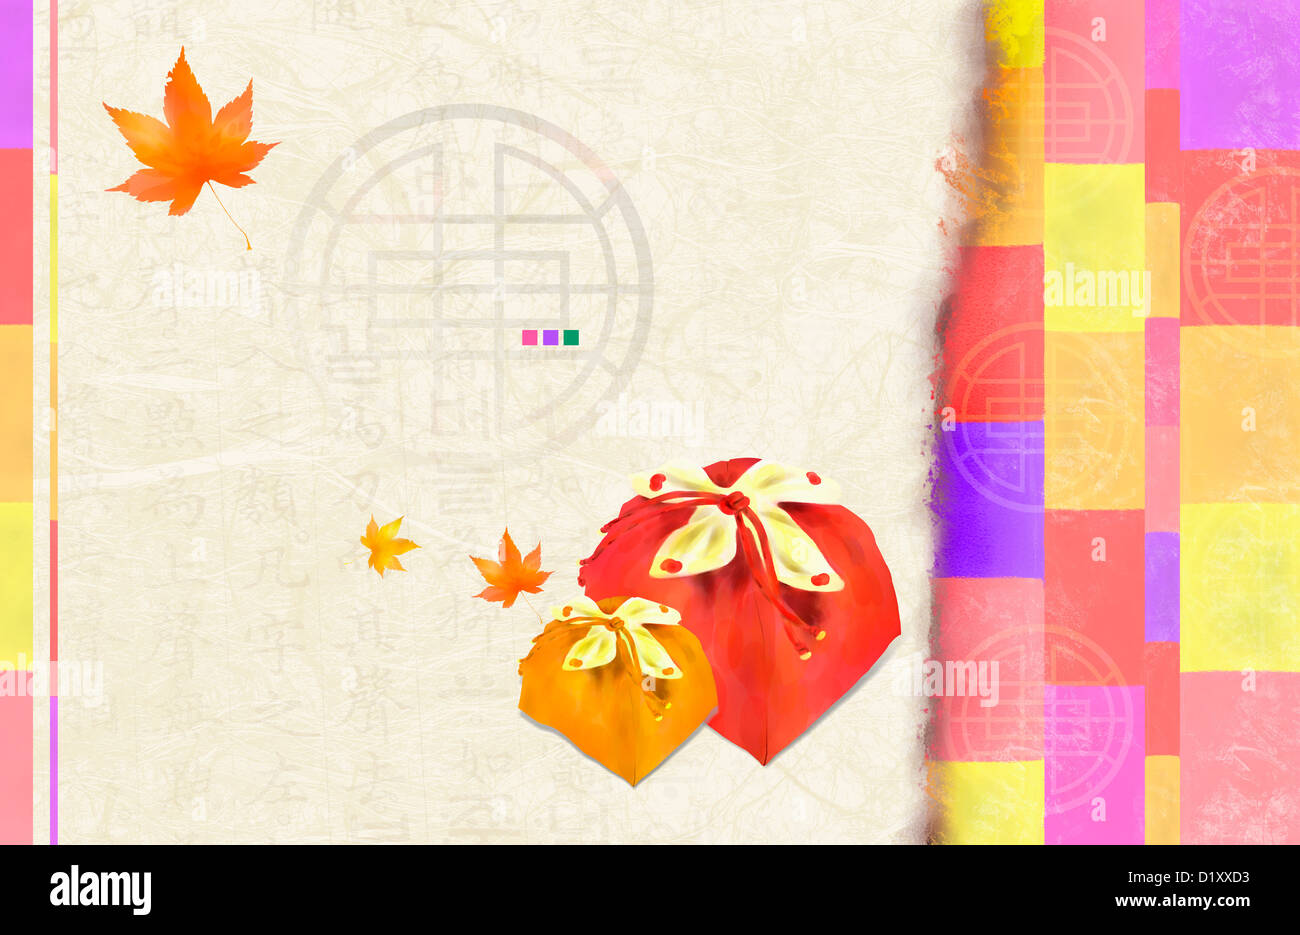 Ppt template illustration of korean traditional design stock photo ppt template illustration of korean traditional design toneelgroepblik Image collections